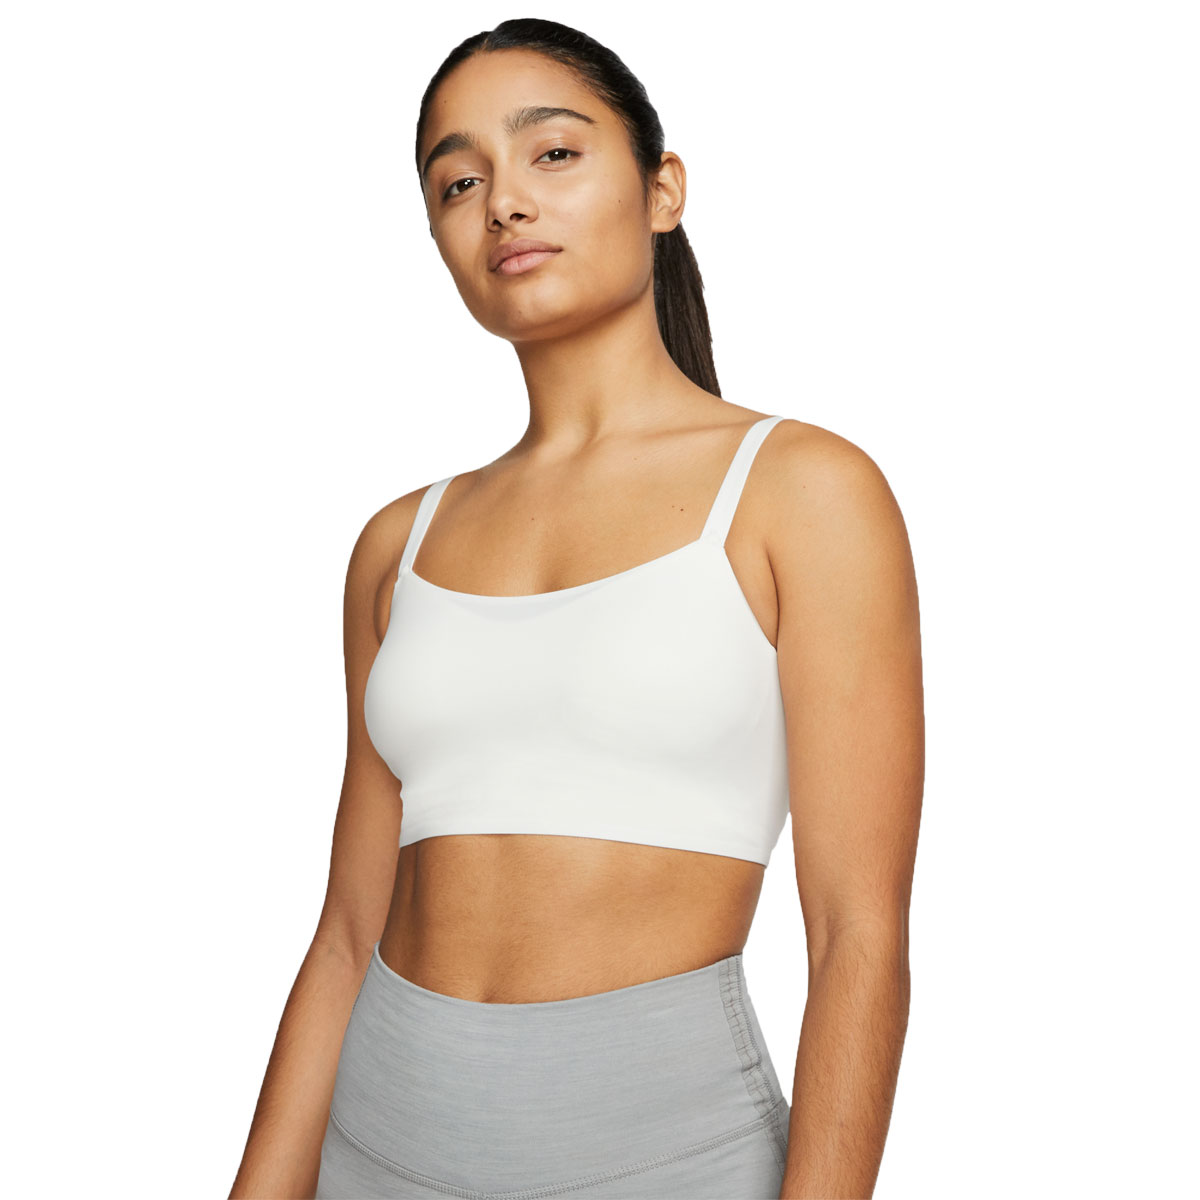 Women's Nike Indy Luxe Bra, , large, image 1